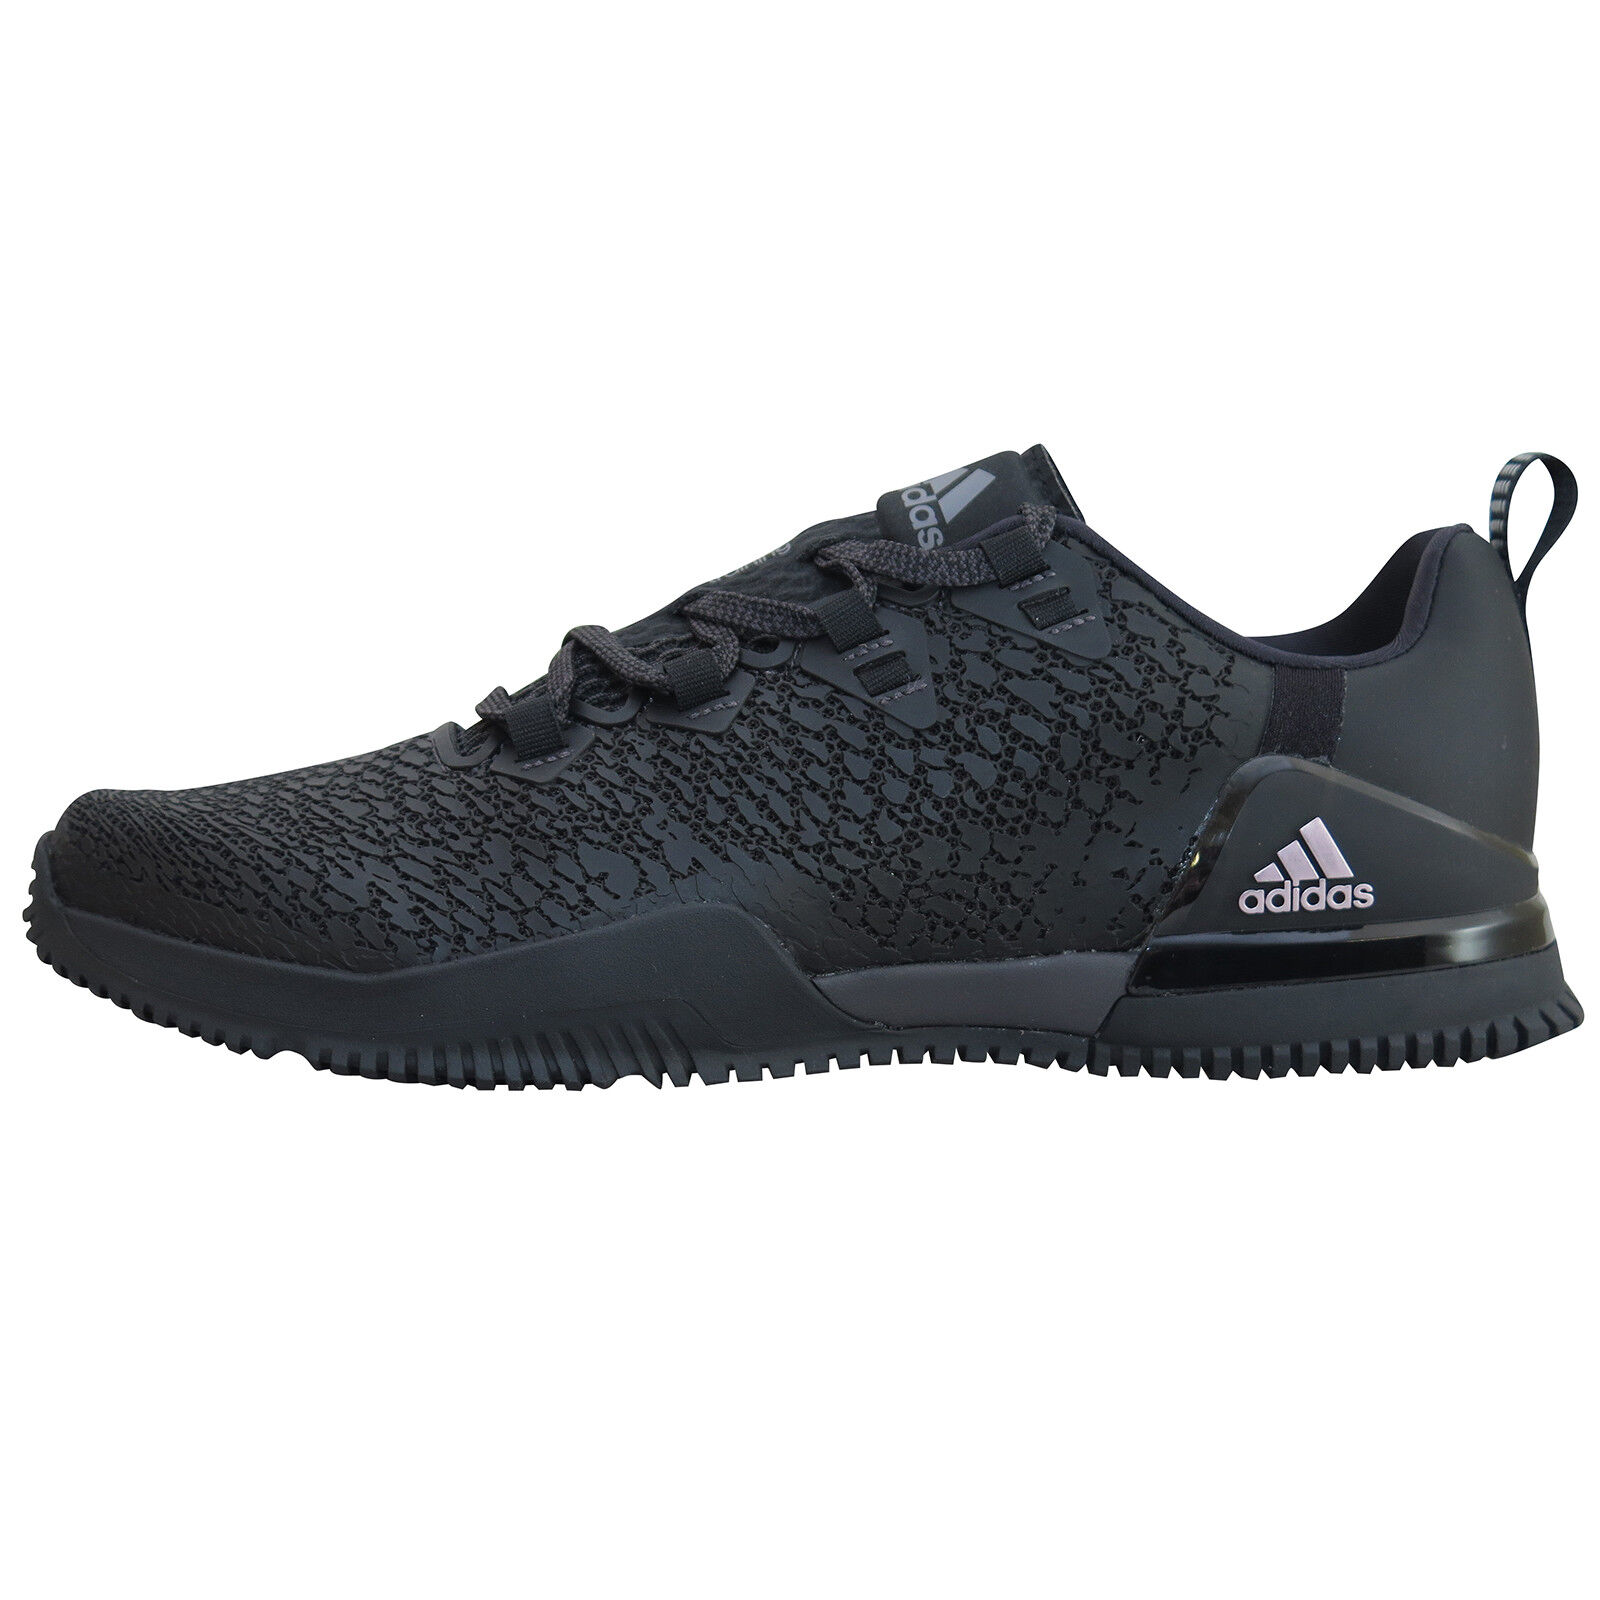 Adidas  Crazypower Tr W Women's Training shoes BA9870  incentive promotionals